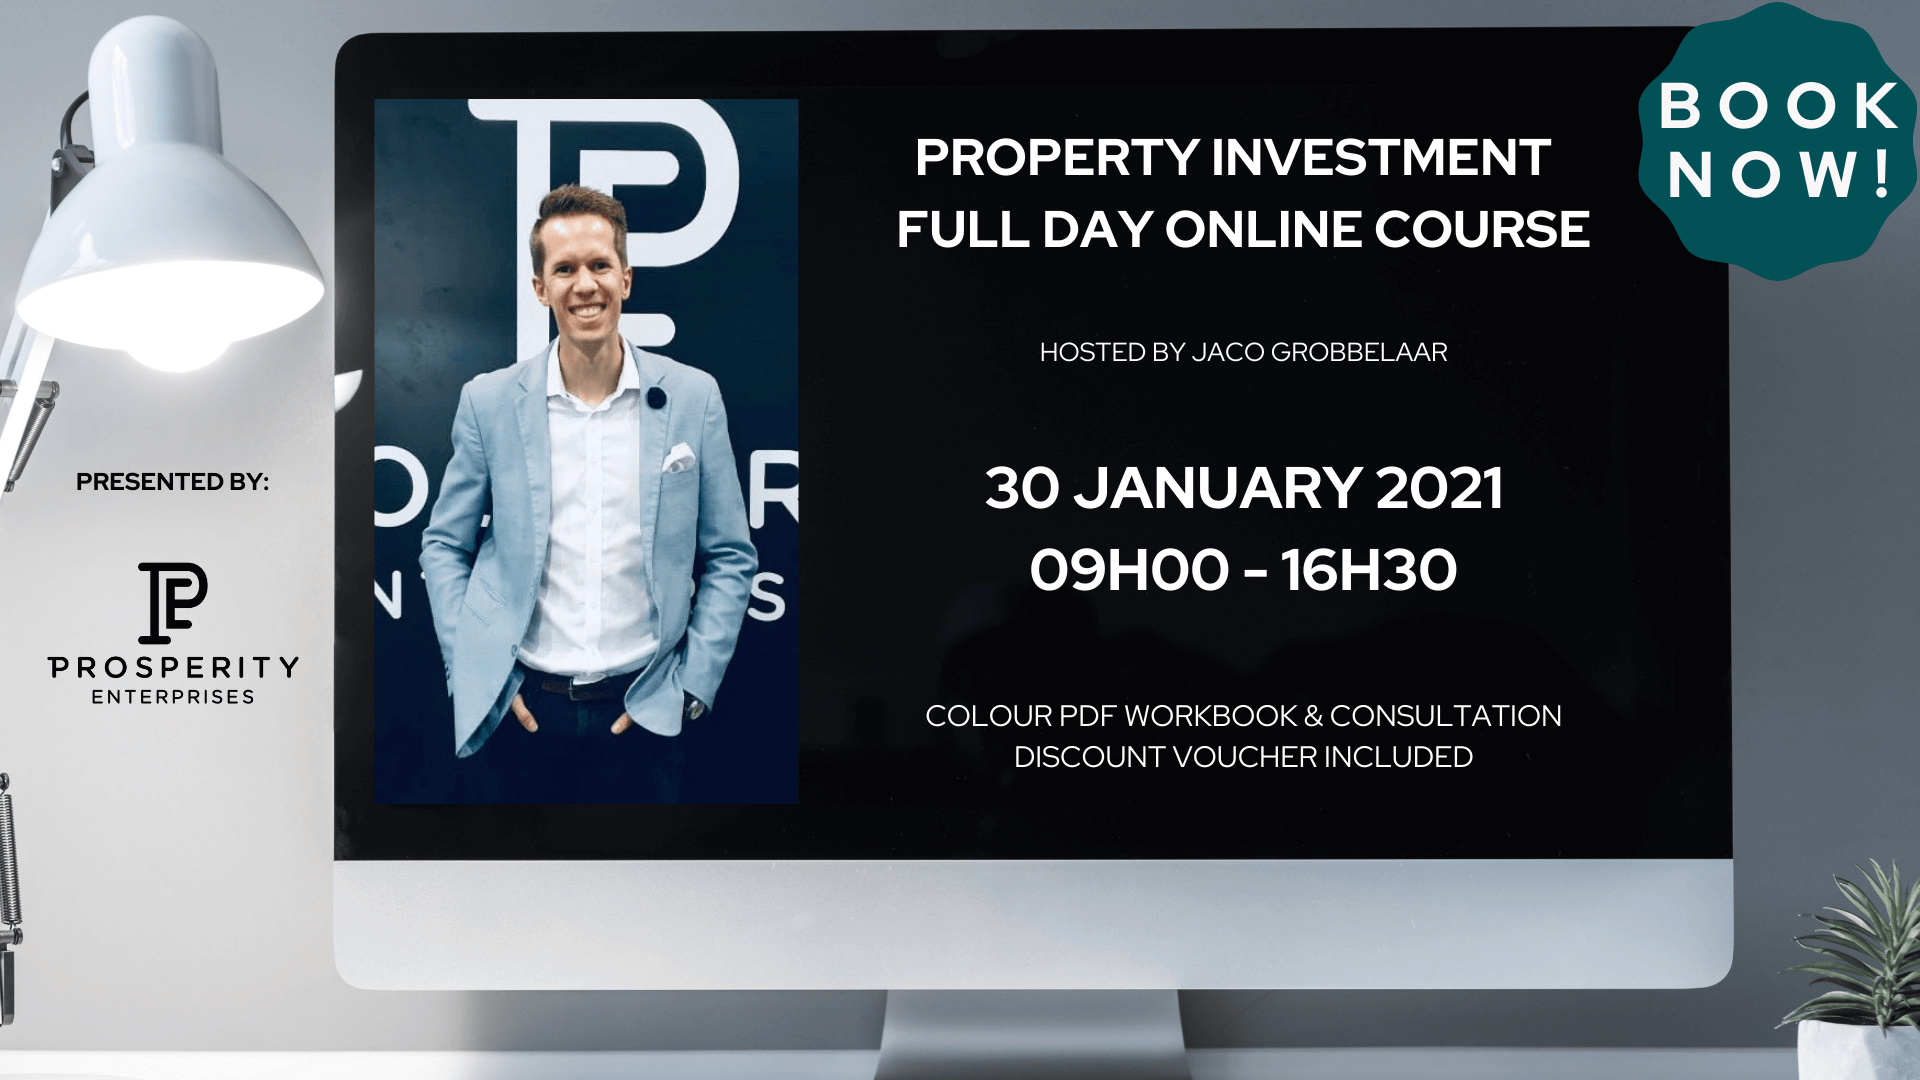 property-investment-webinar-full-day-online-course